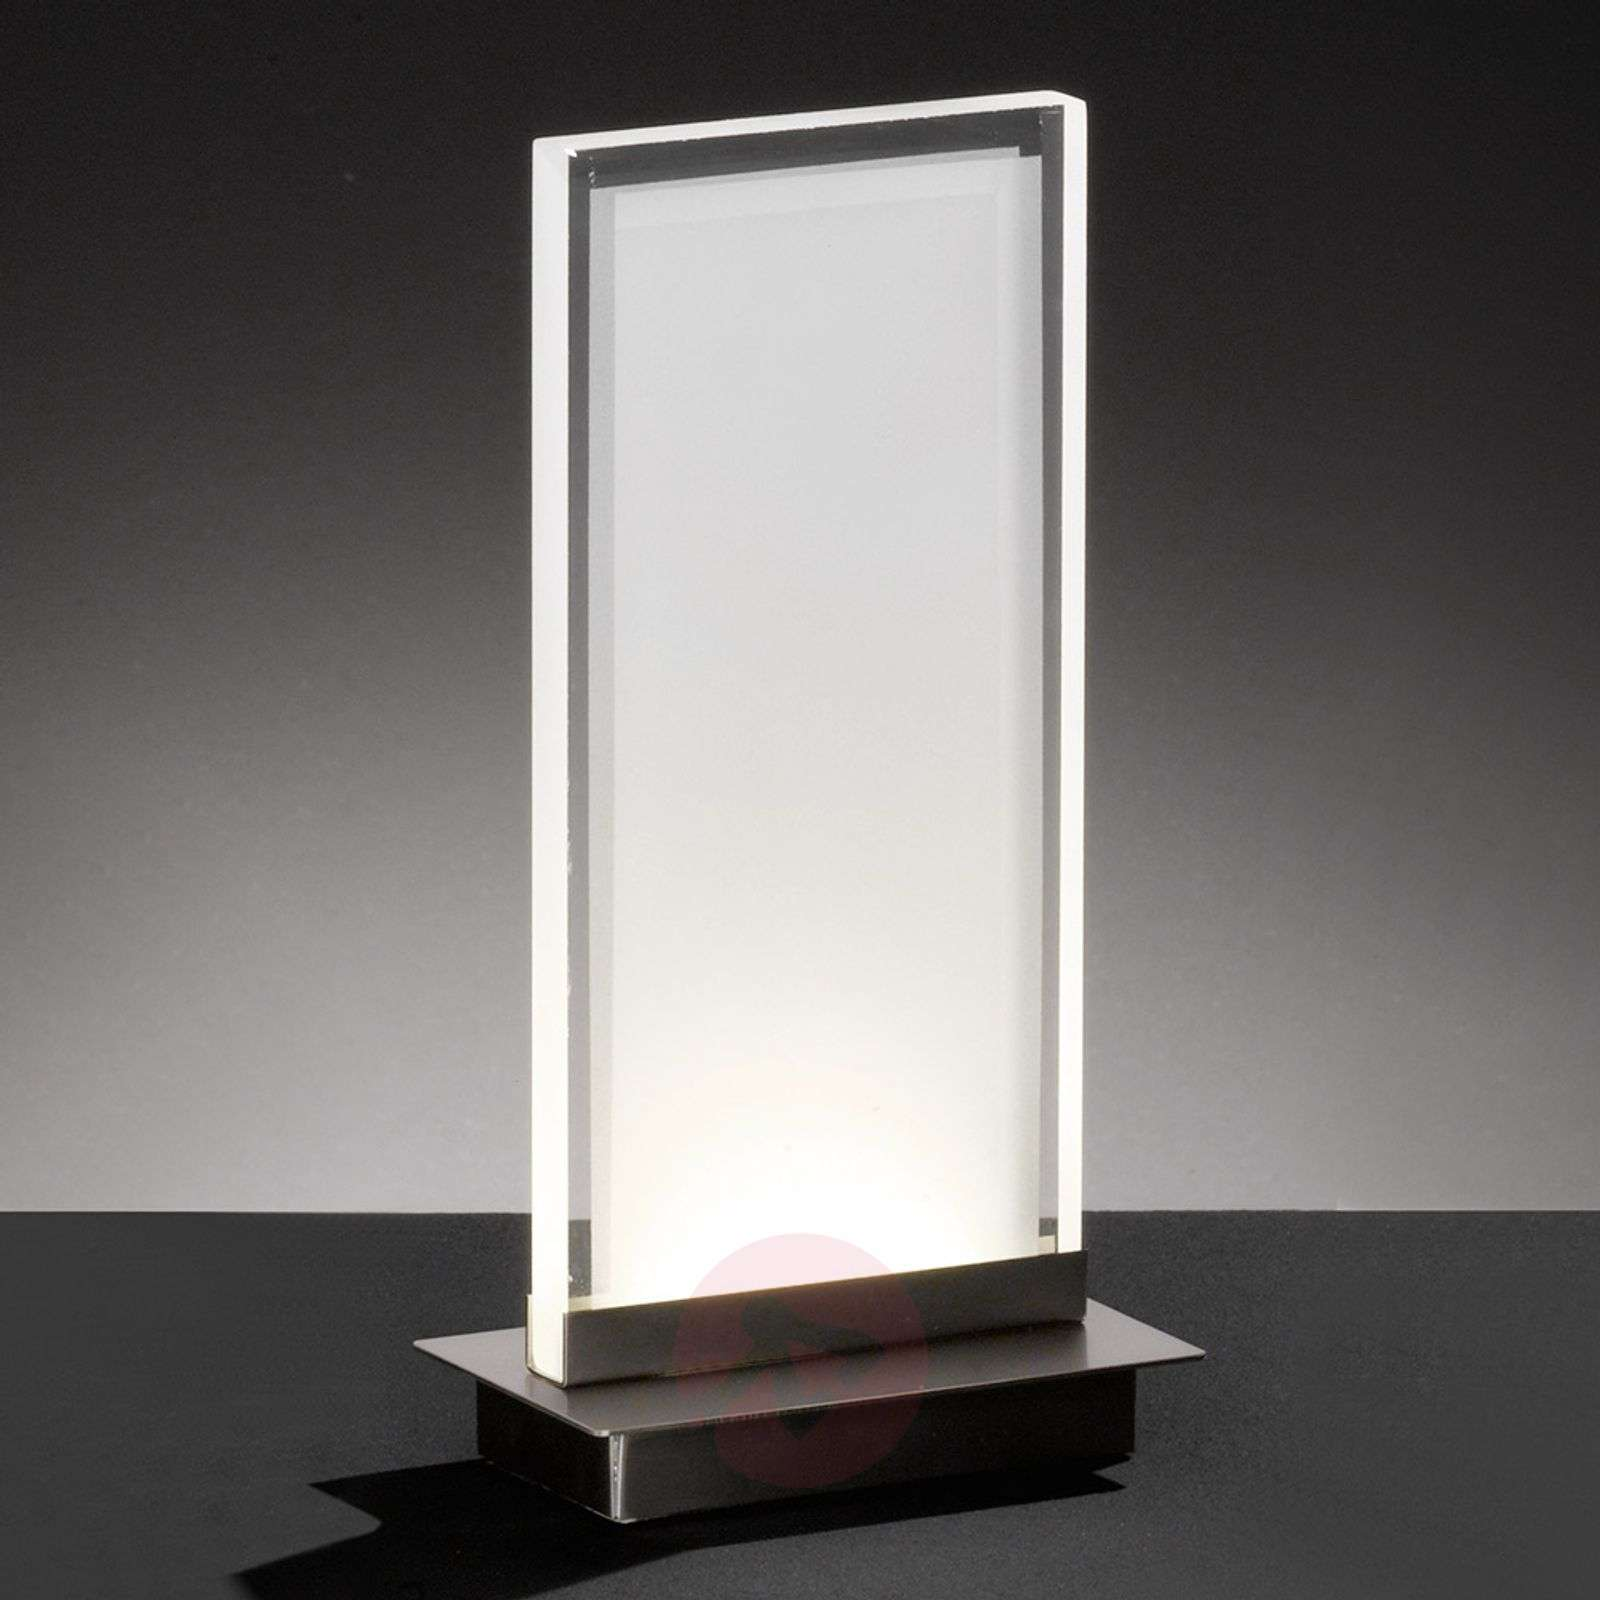 Lampe à poser LED rectangulaire Forma-4581028-01